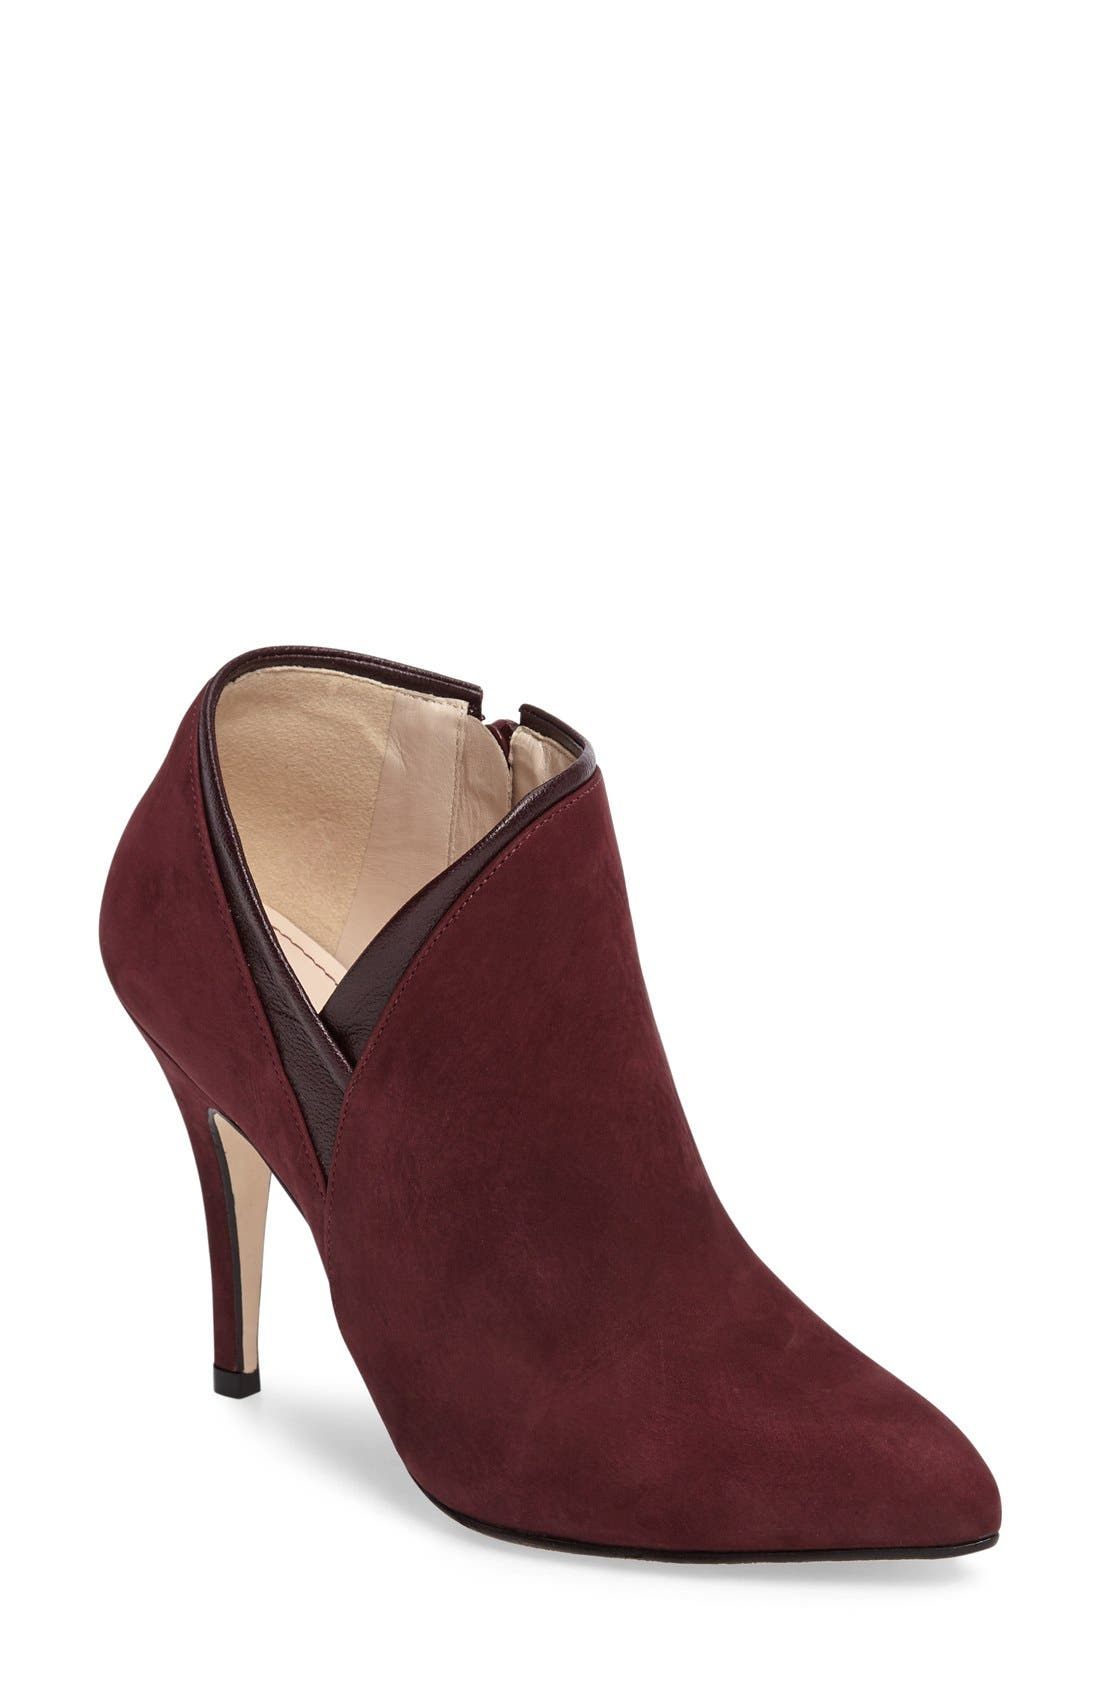 Alternate Image 1 Selected - Klub Nico Royal Pointy Toe Bootie (Women)